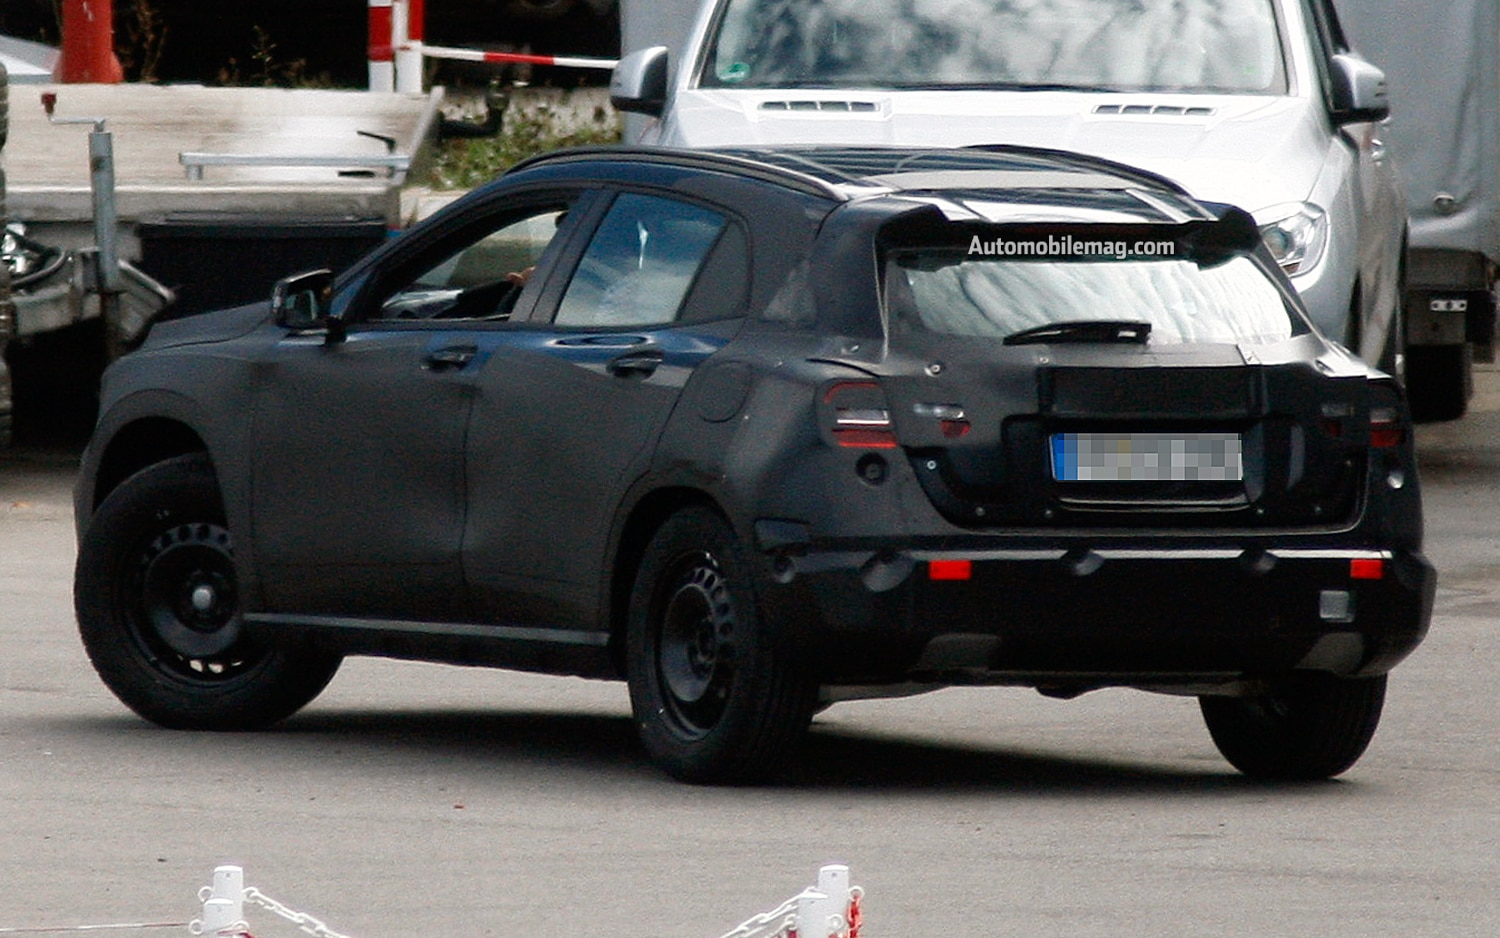 Mercedes Benz Gla Compact Suv Caught Testing